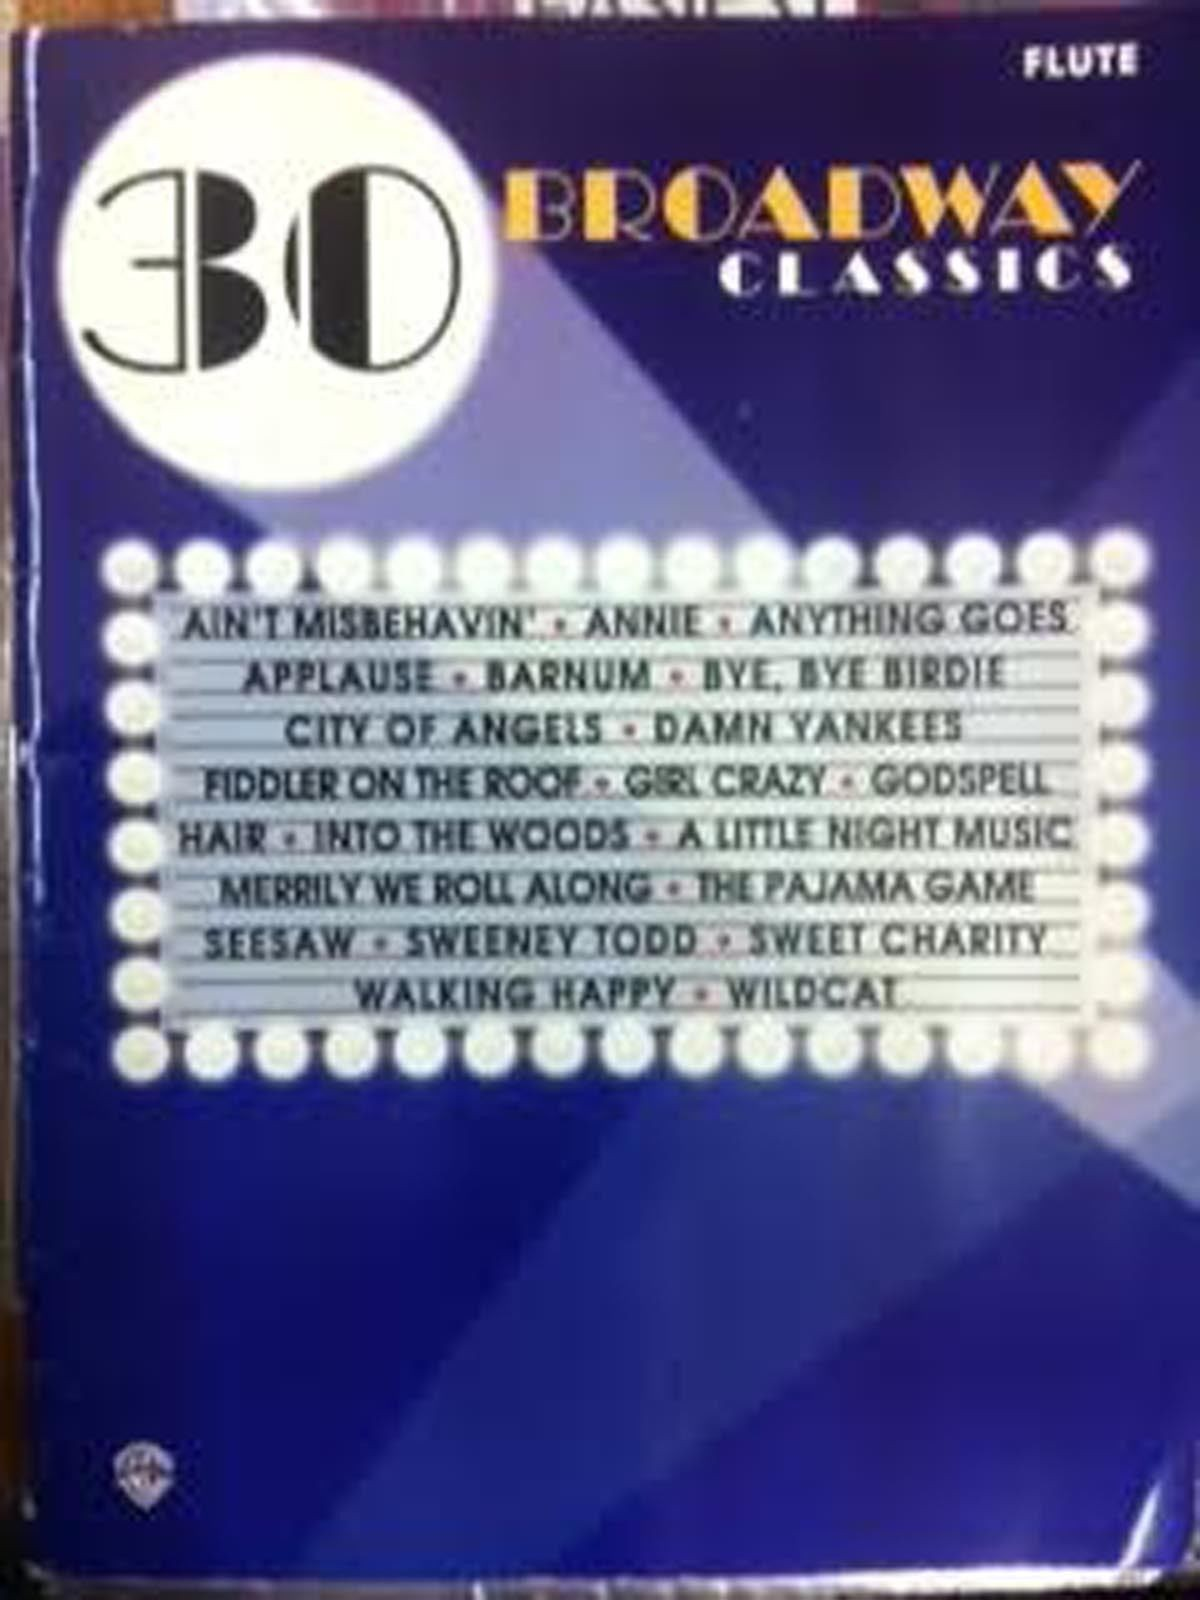 30 Broadway Classics Flute Book Sheet Music Songbook Musicals Shows Easy S96